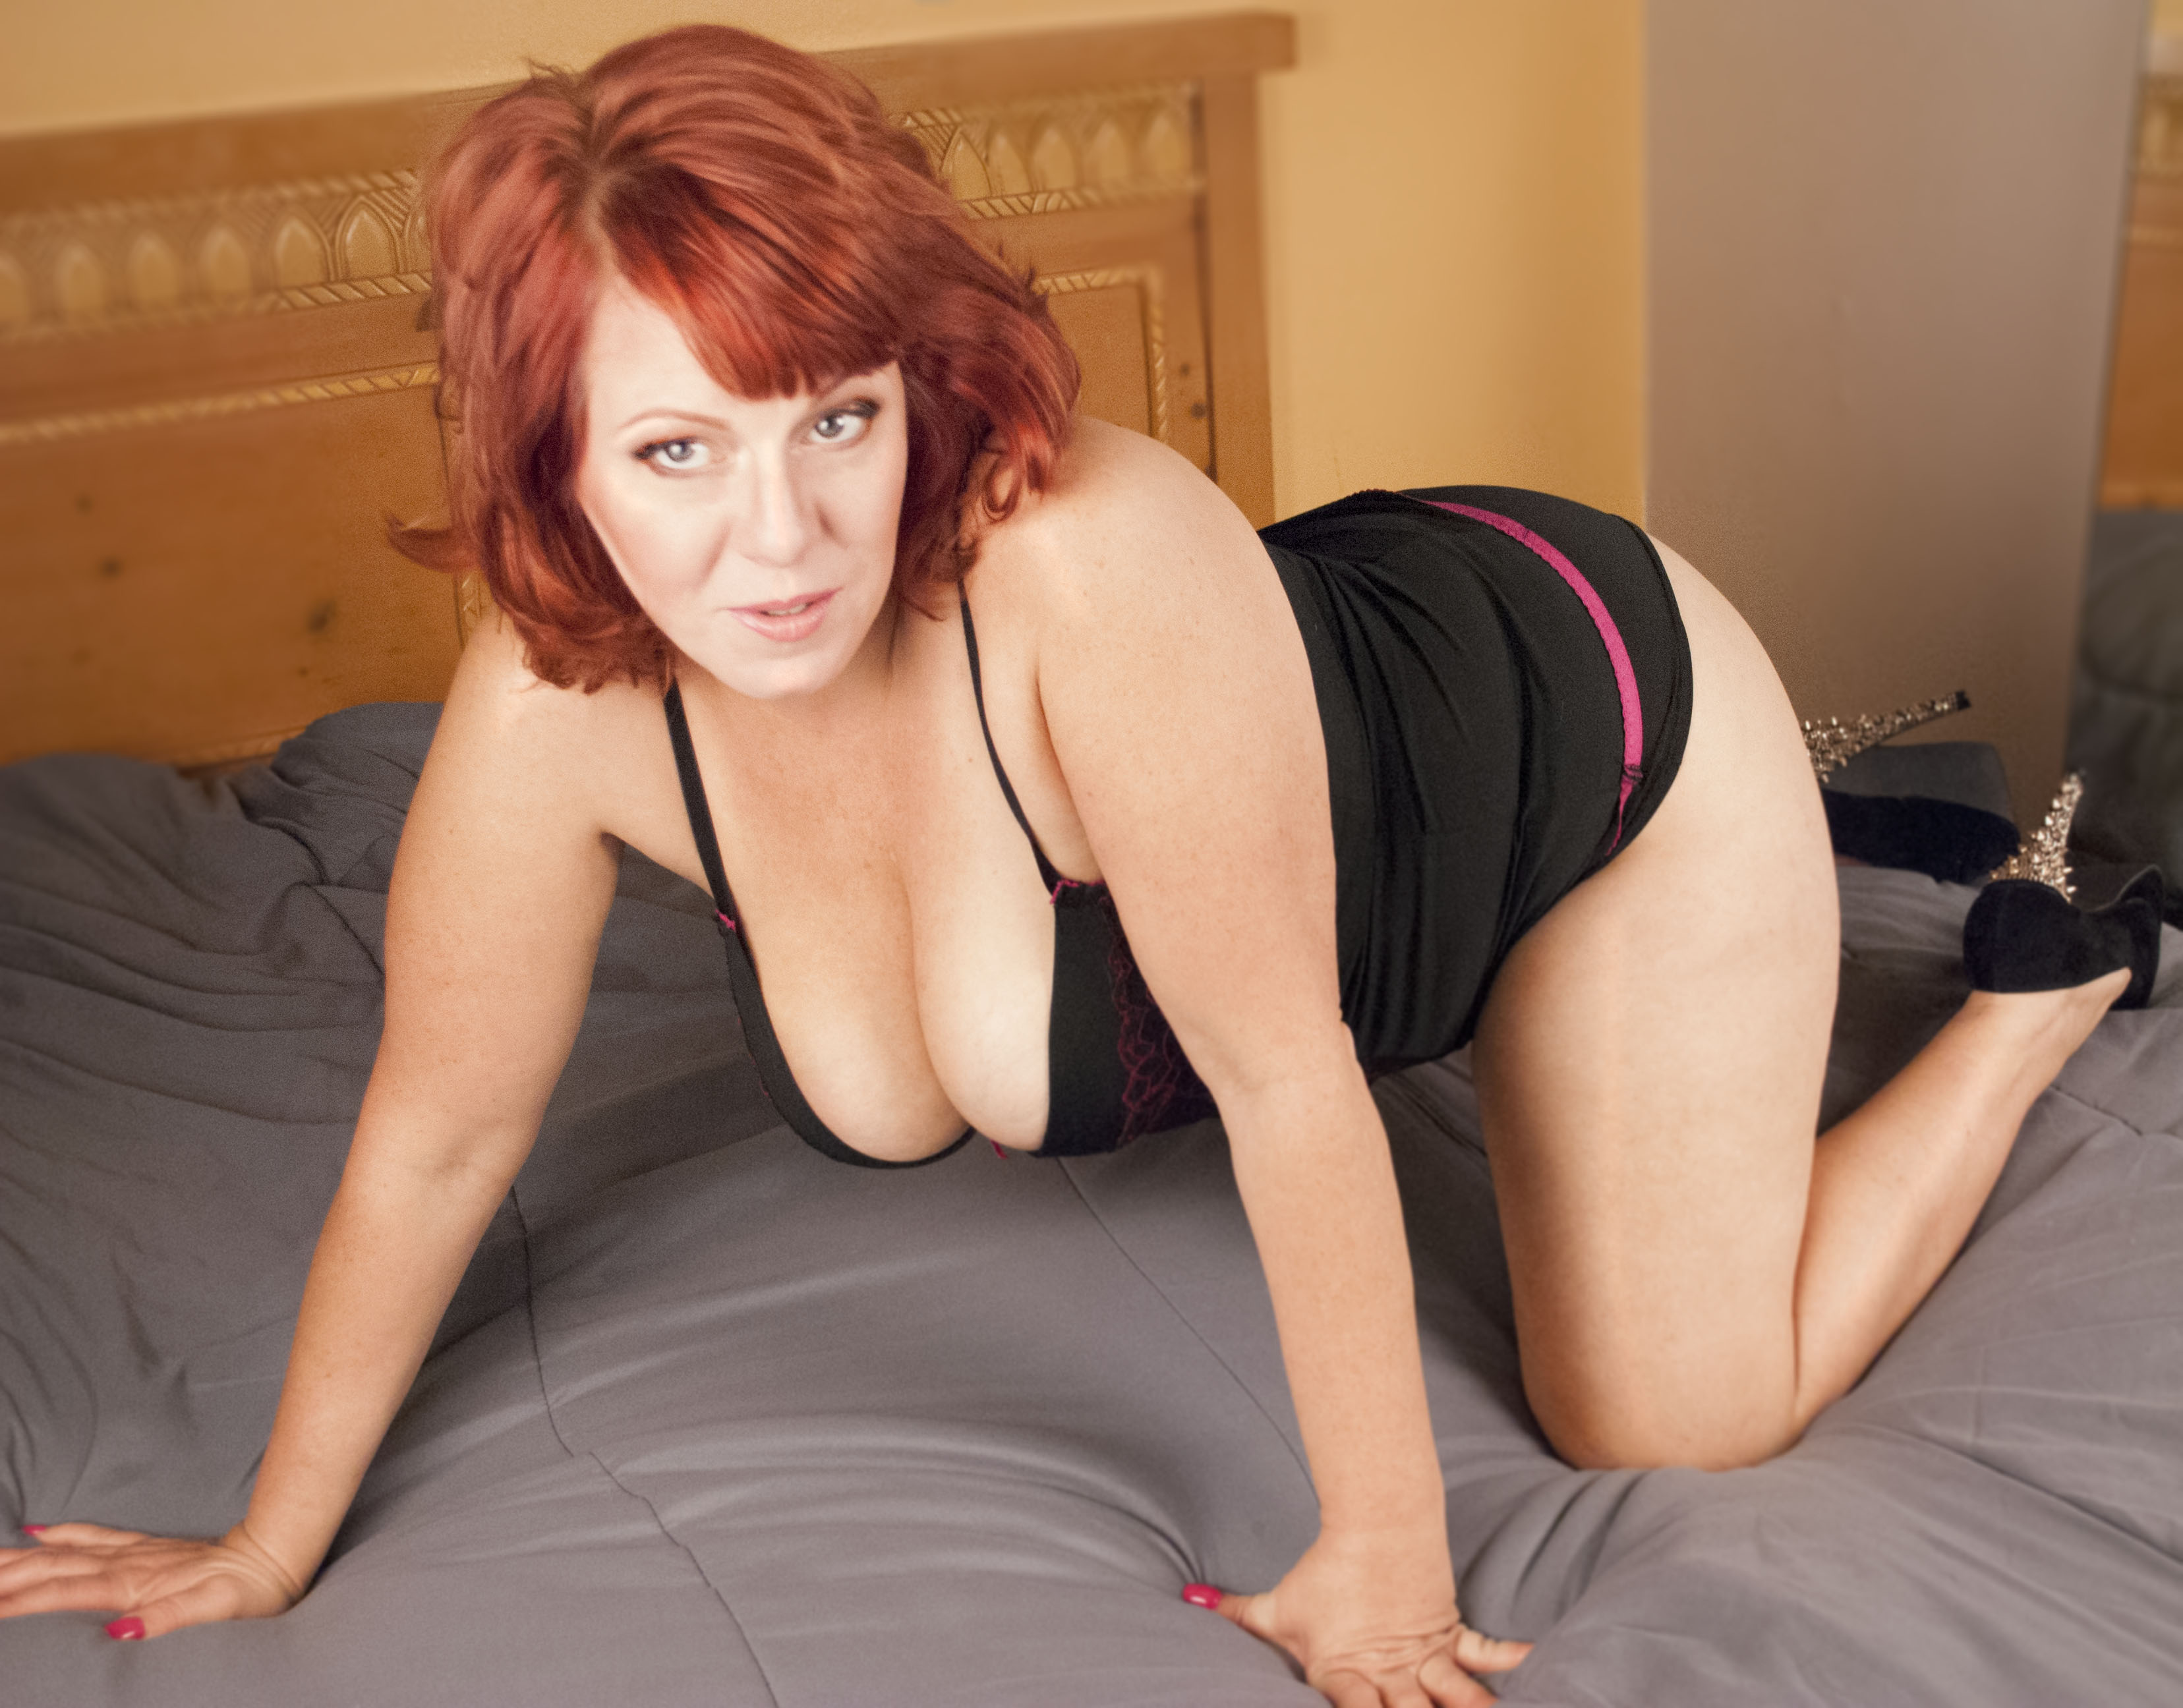 mature adult services escourts and babes Western Australia